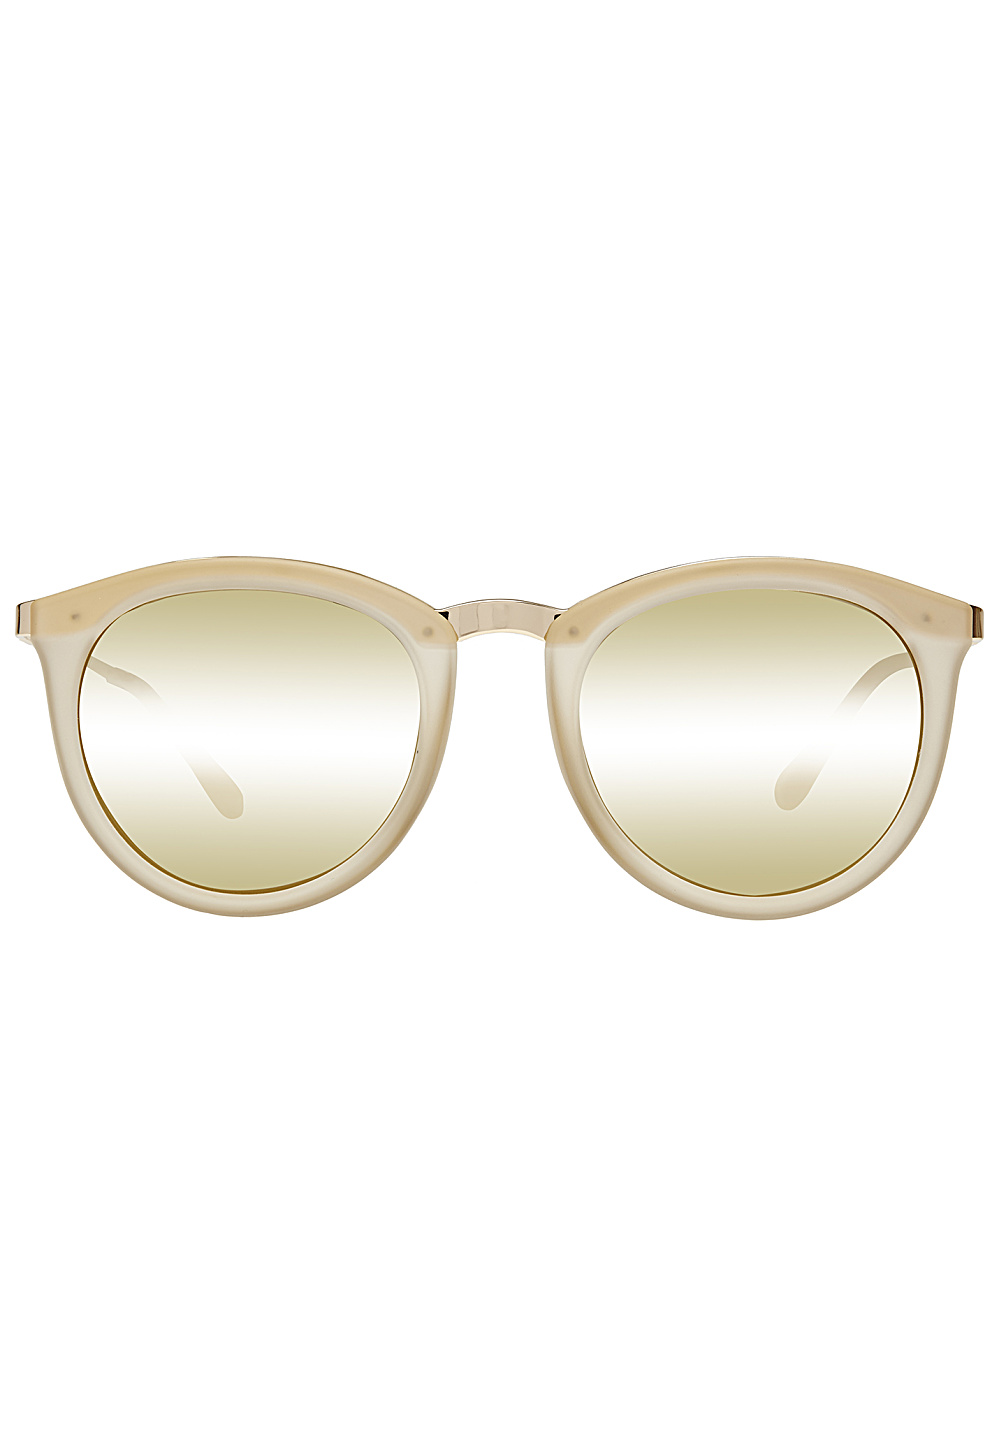 ebe5166a6049 ... Le Specs No Smirking - Sunglasses - Gold. Back to Overview. 1  2.  Previous